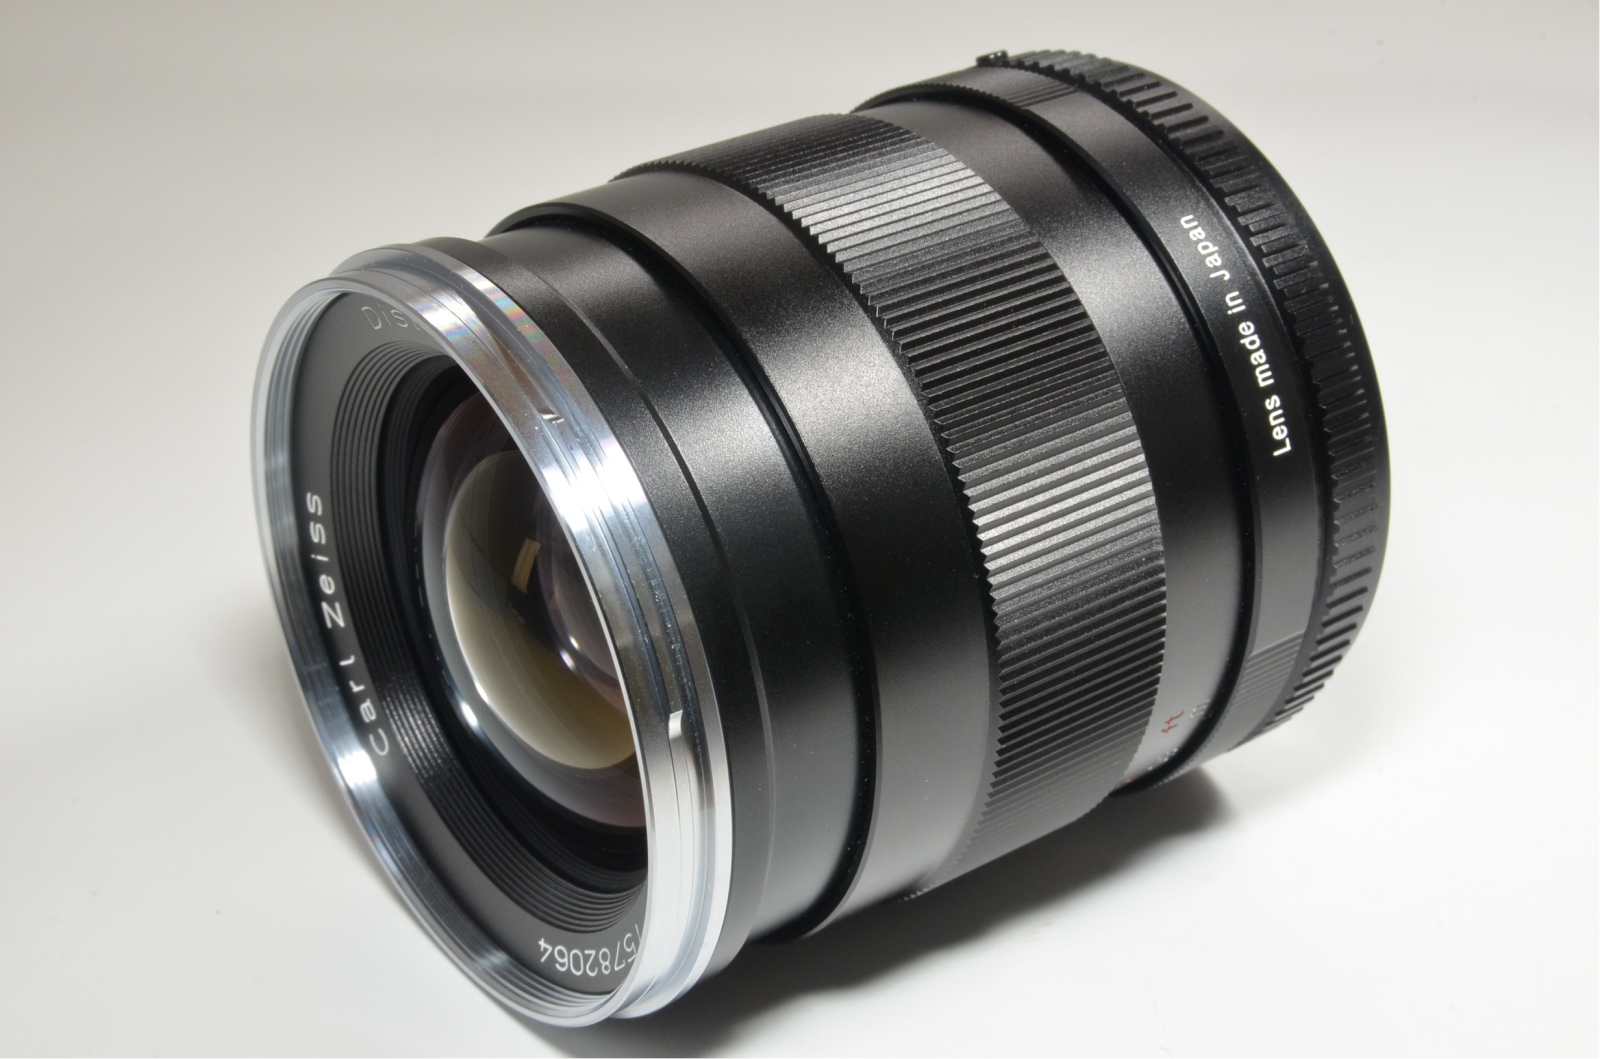 carl zeiss distagon t* 35mm f2 zf.2 for nikon from japan